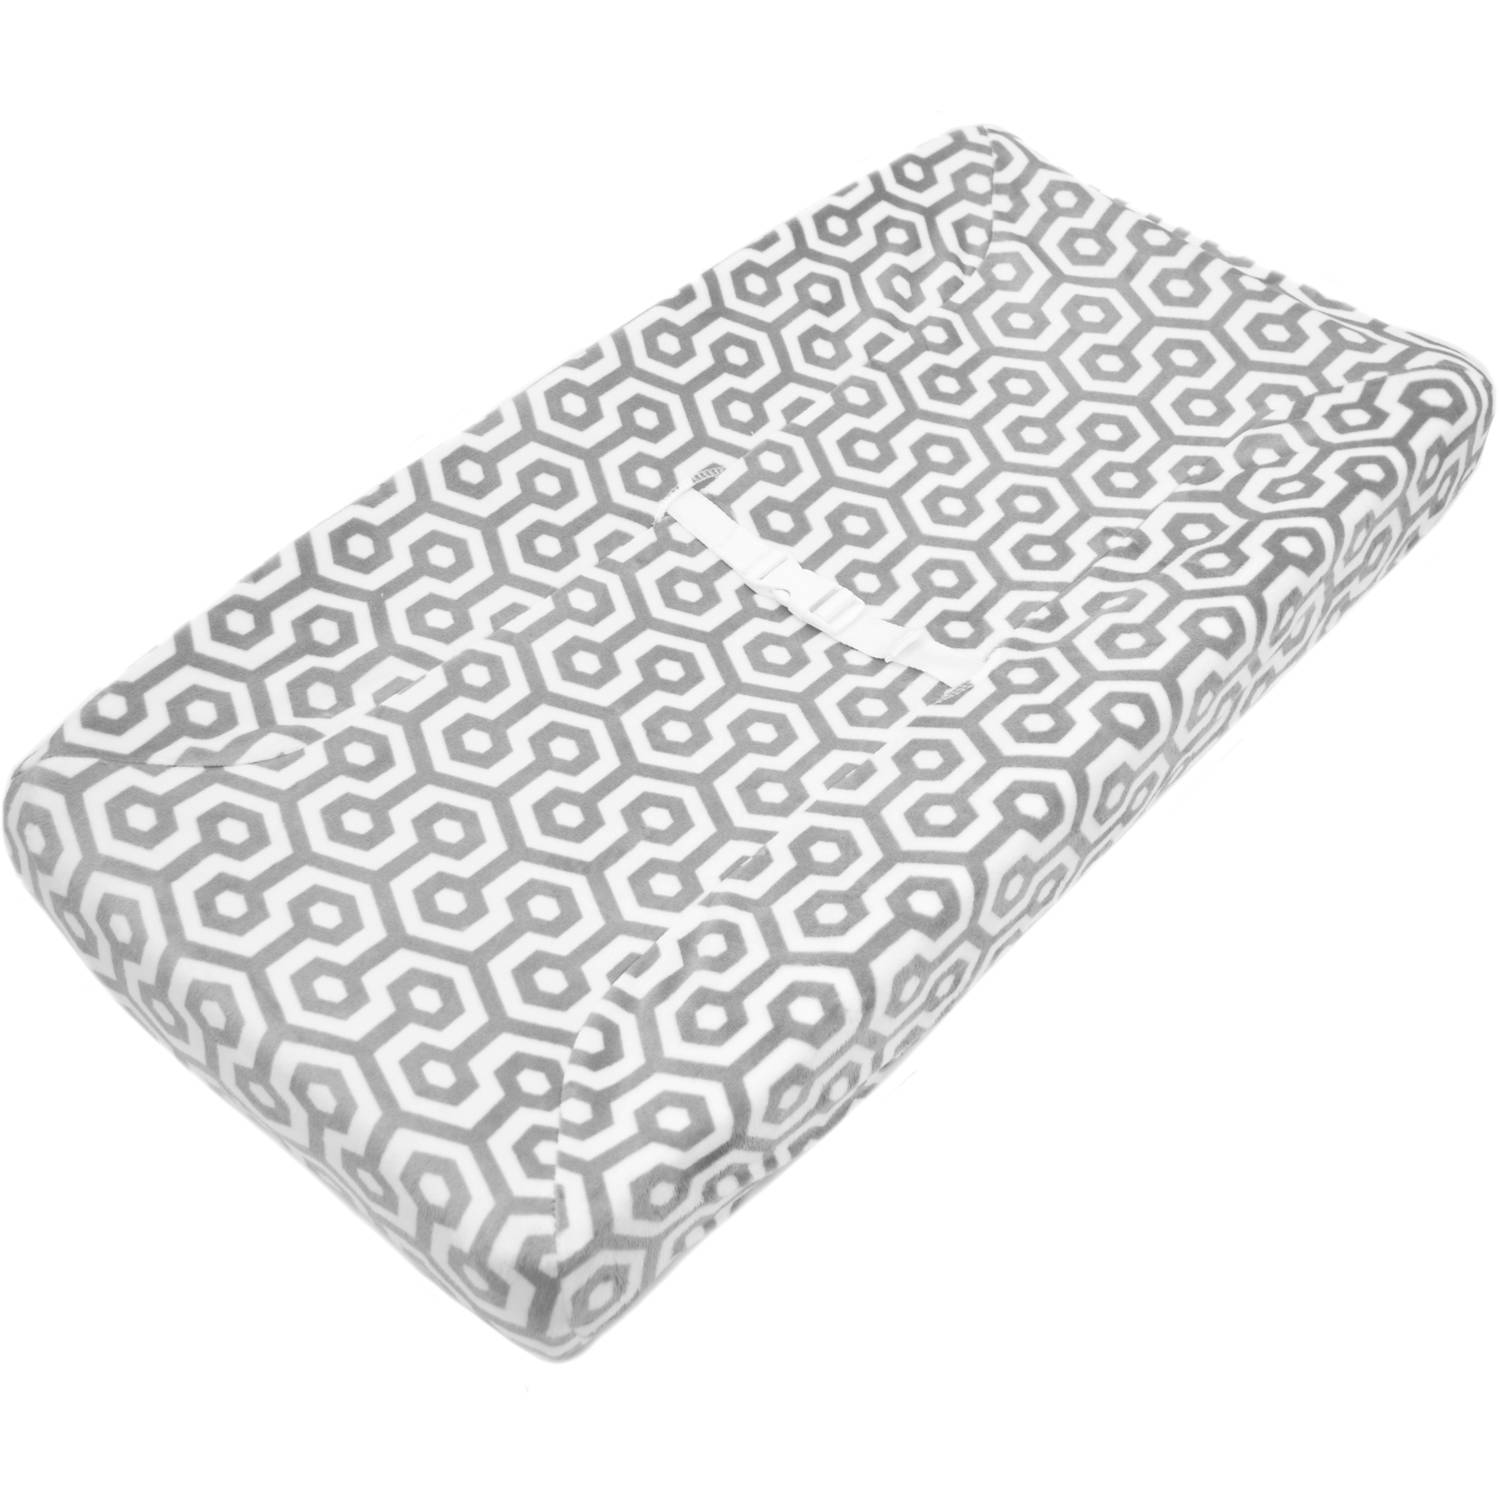 TL Care Heavenly Soft Chenille Fitted Contoured Changing Pad Cover, Gray Honeycomb